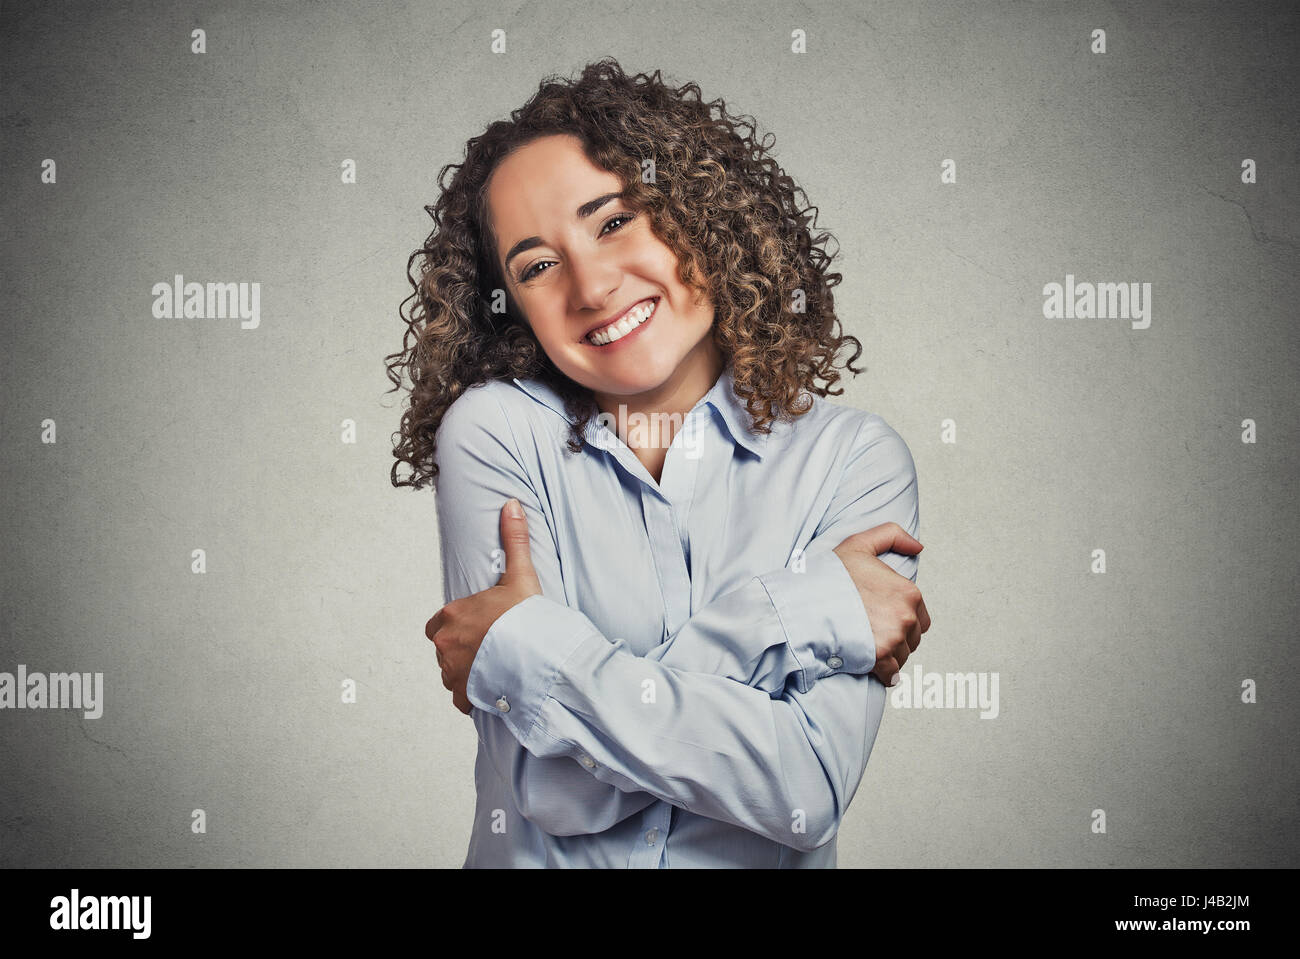 Closeup portrait confident smiling woman holding hugging herself isolated grey wall background. Positive human emotion, - Stock Image